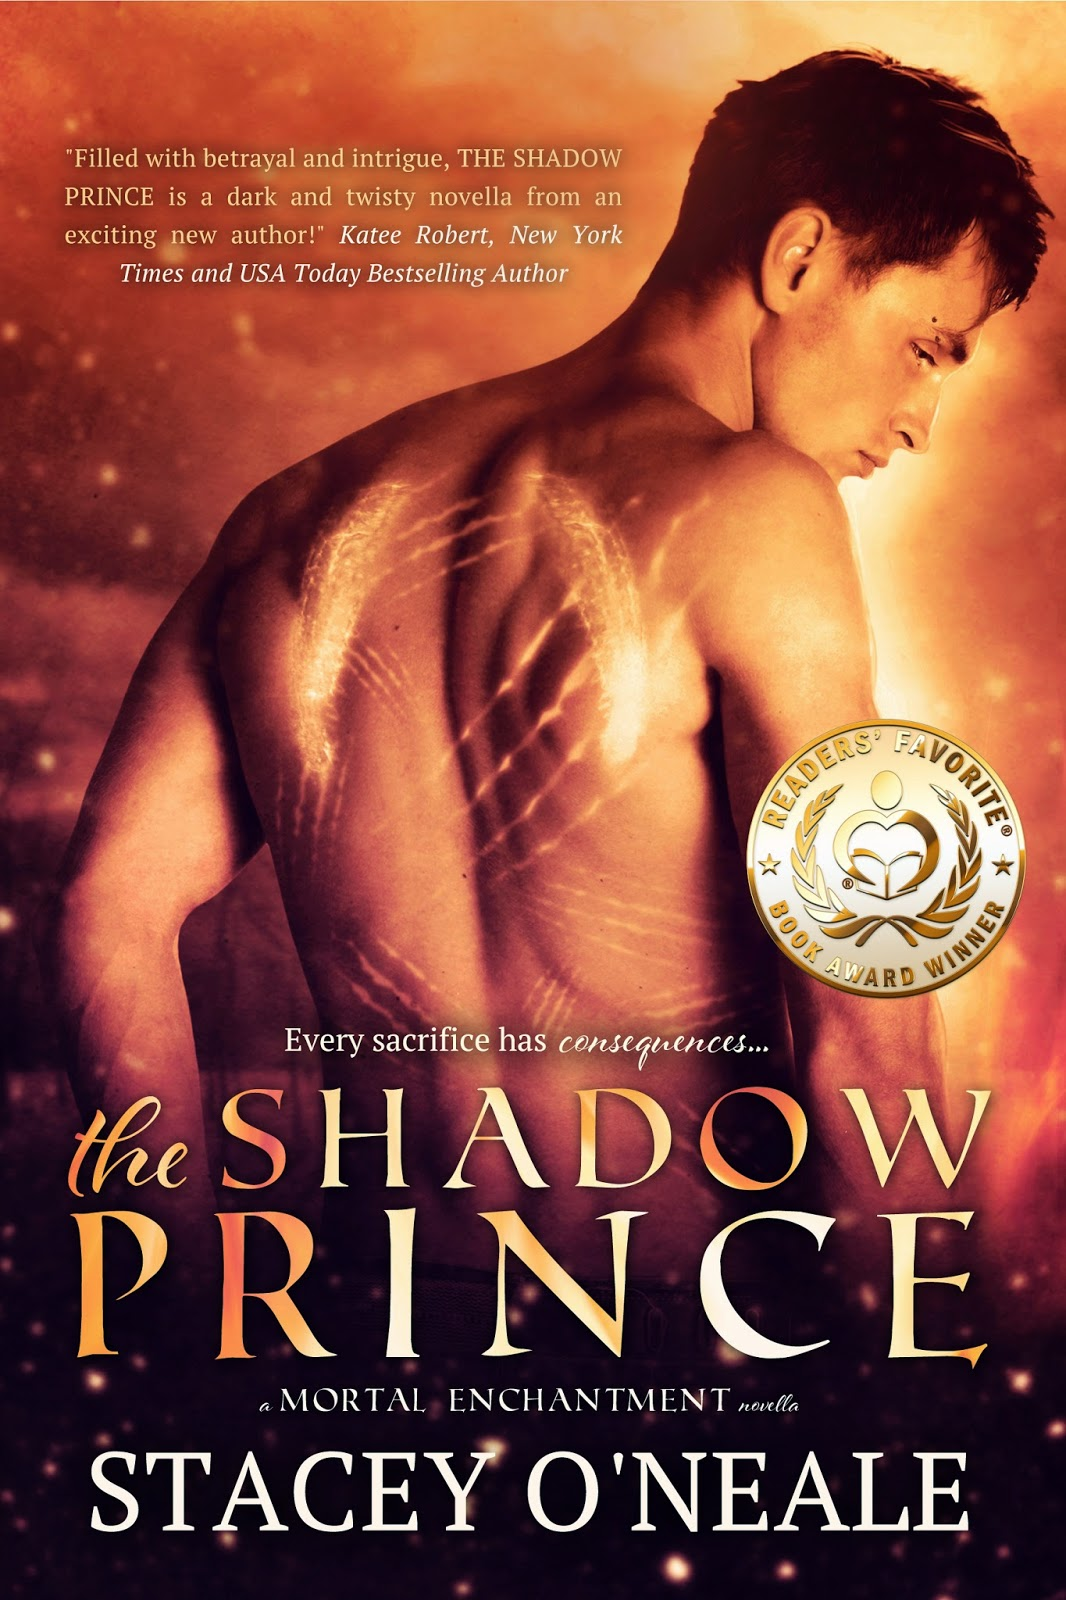 https://www.goodreads.com/book/show/20542942-the-shadow-prince?from_search=true